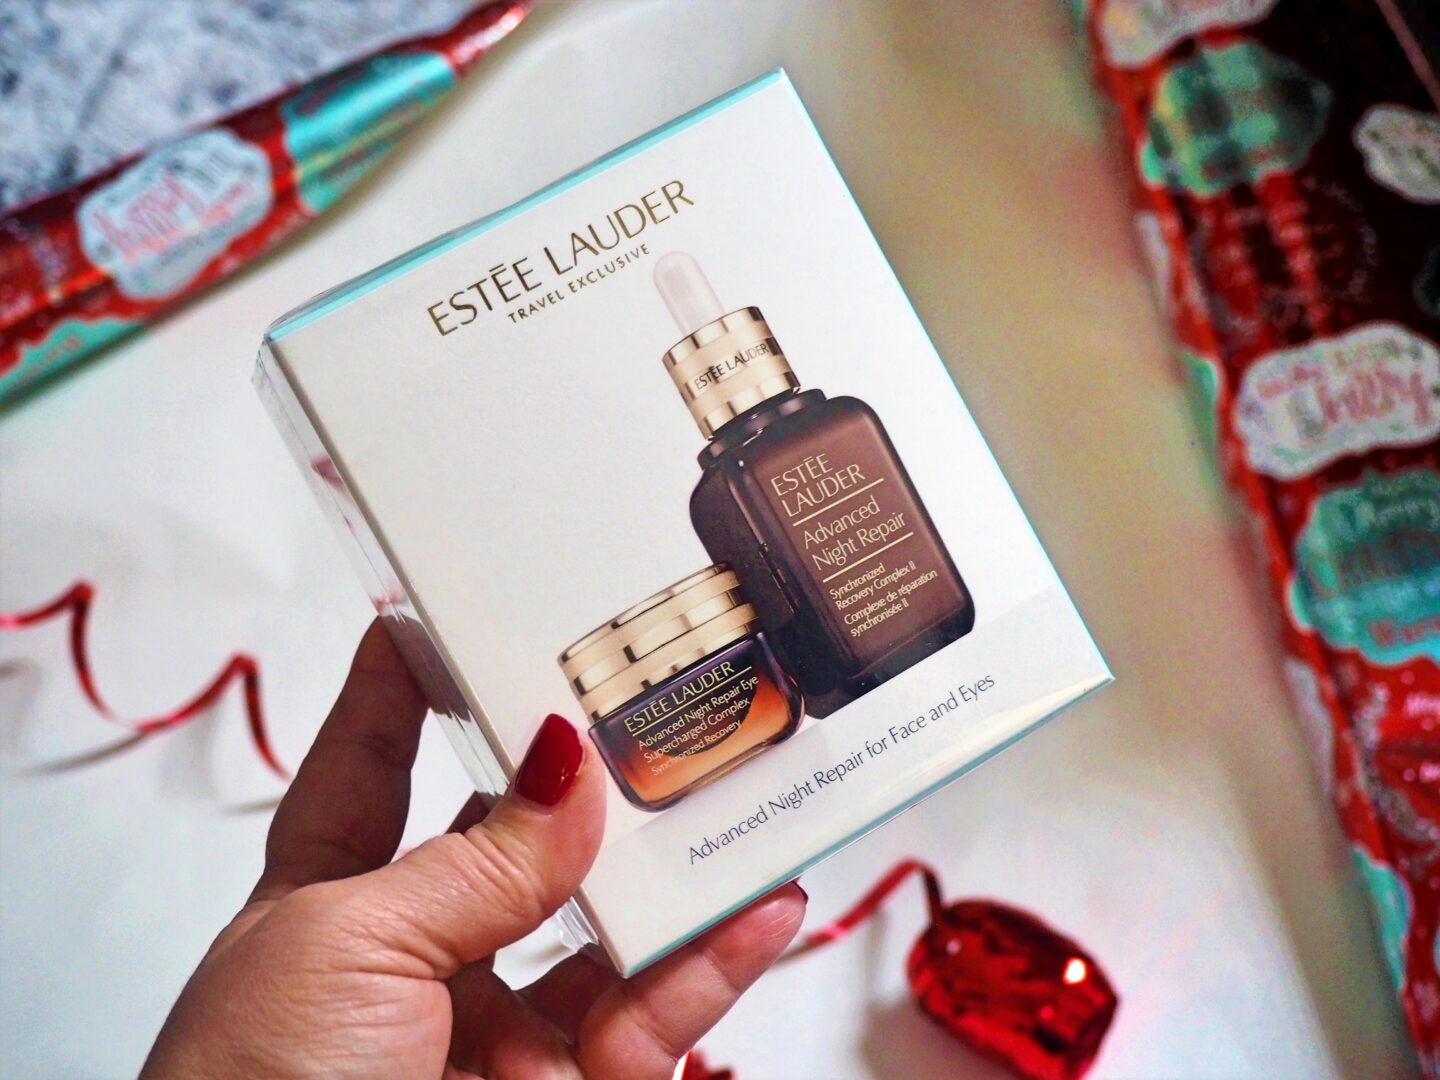 Estee lauder travel exclusive world duty free